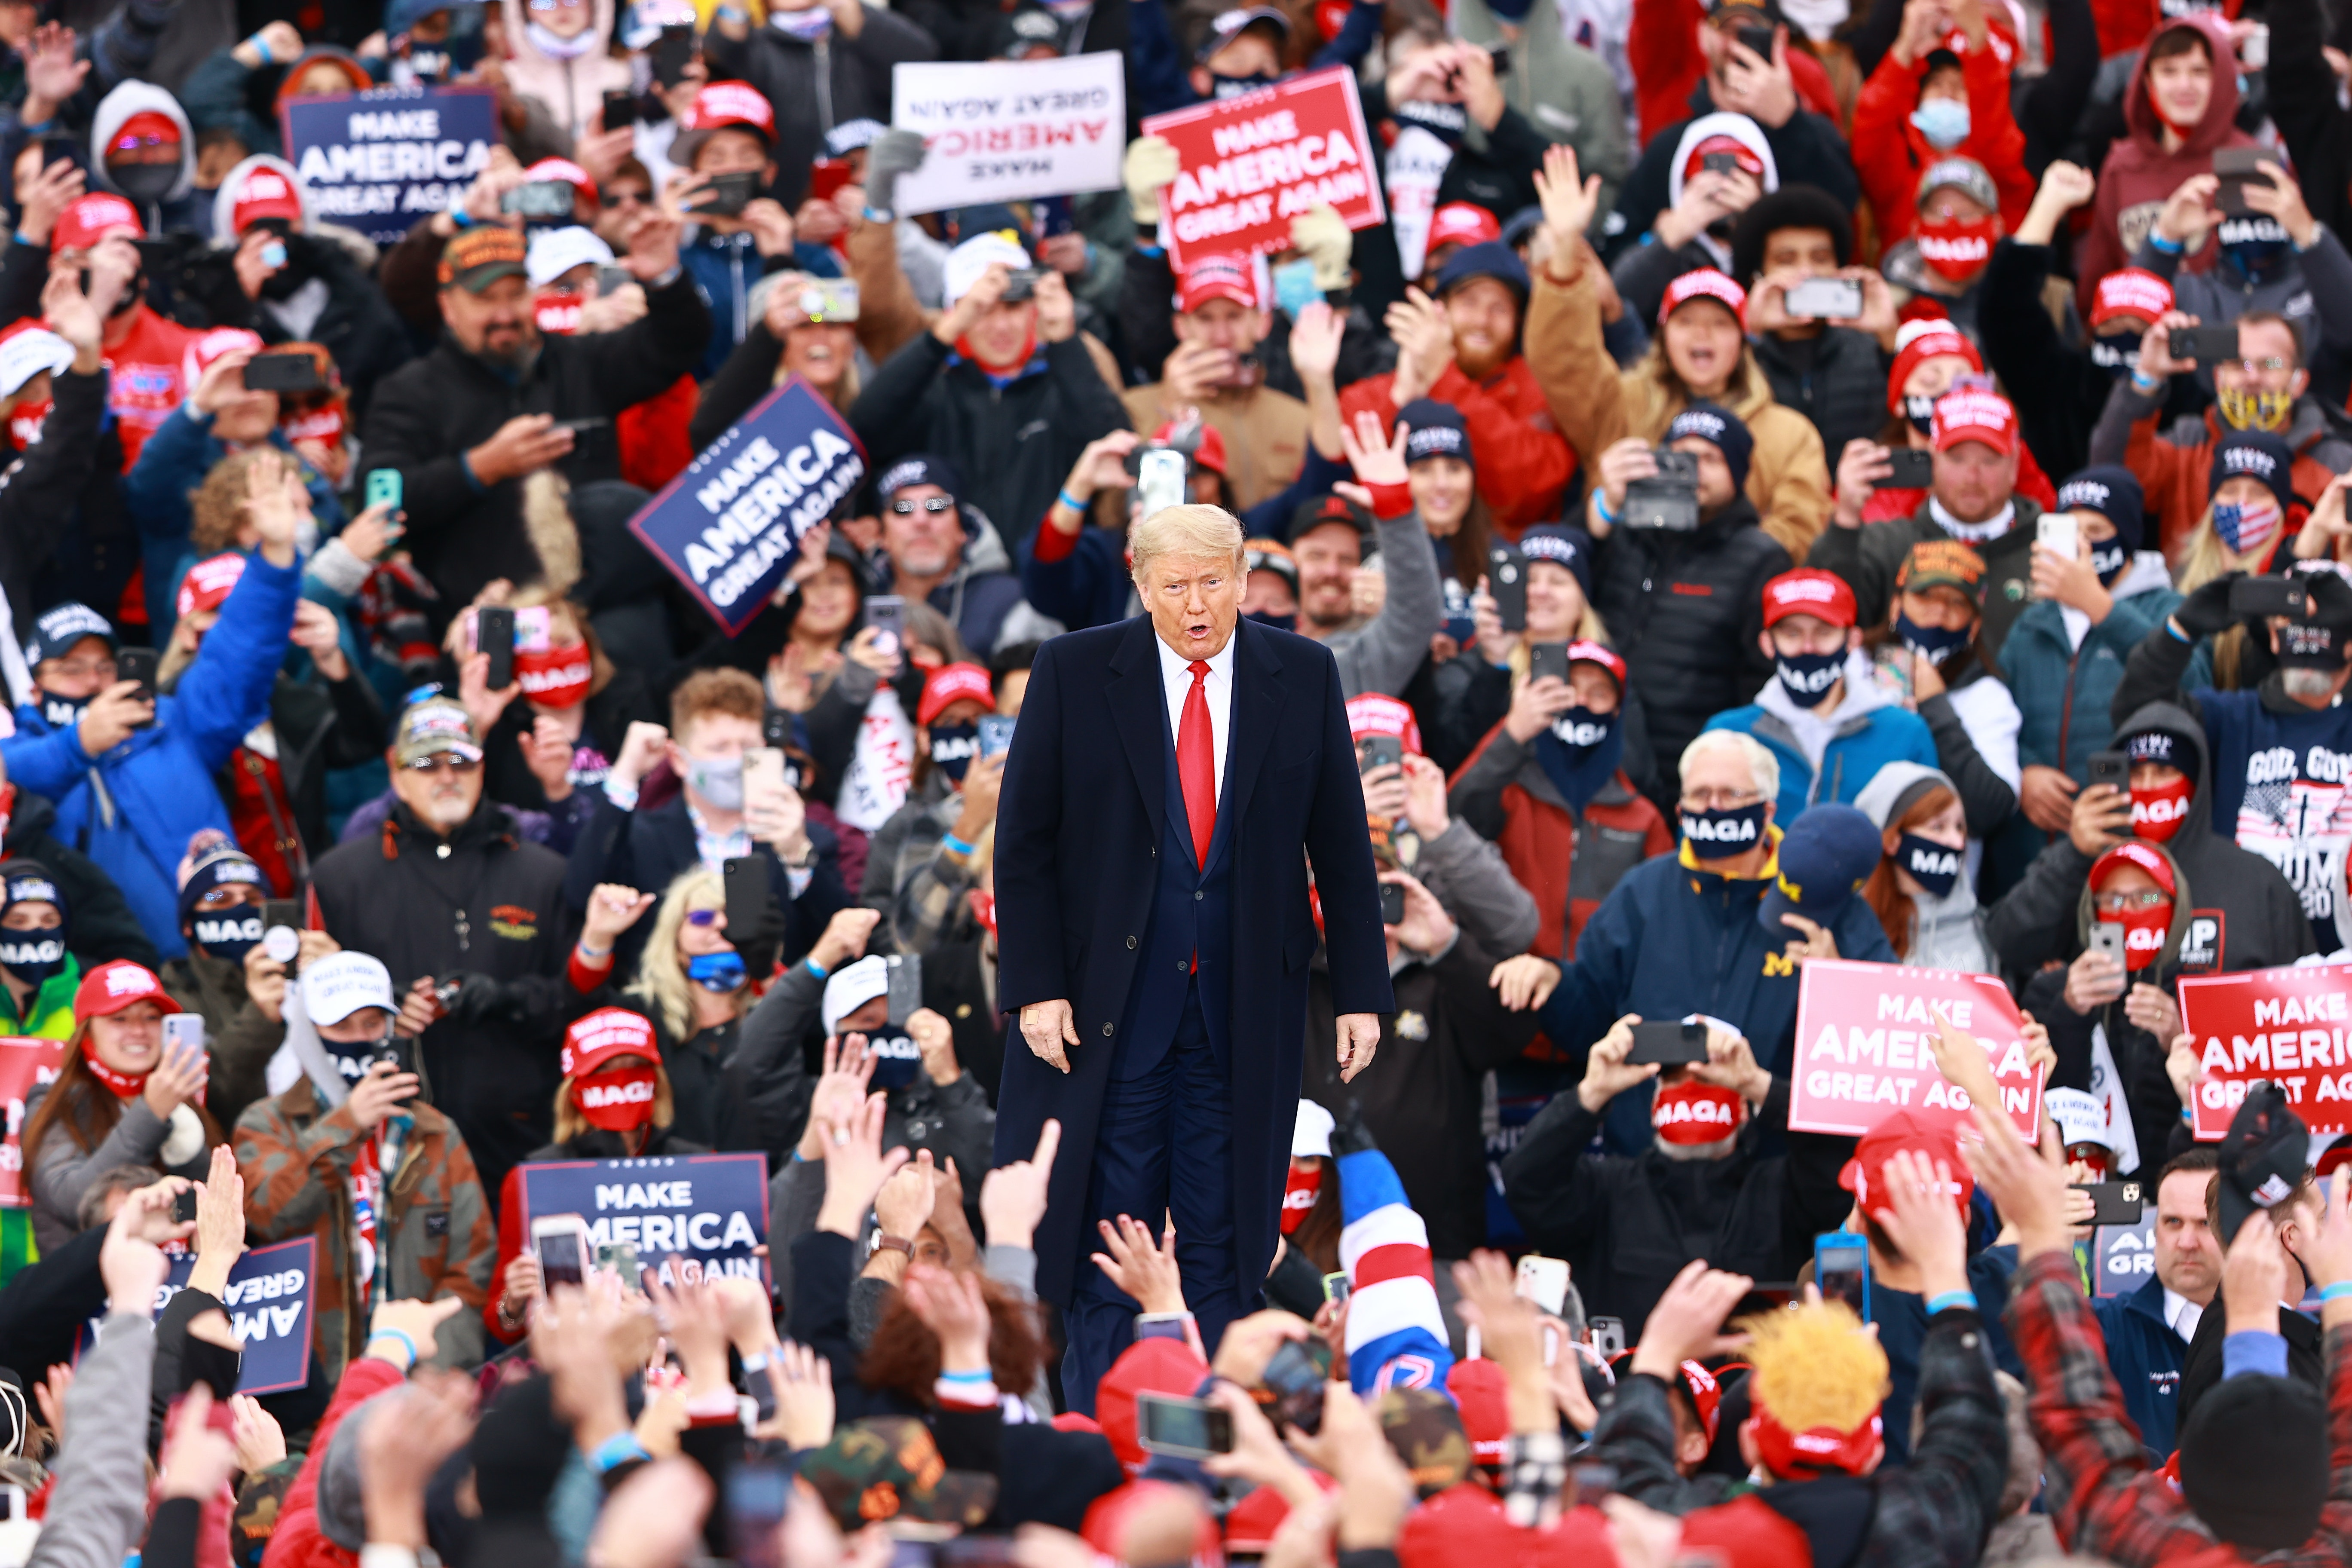 Trump in front of a crowd